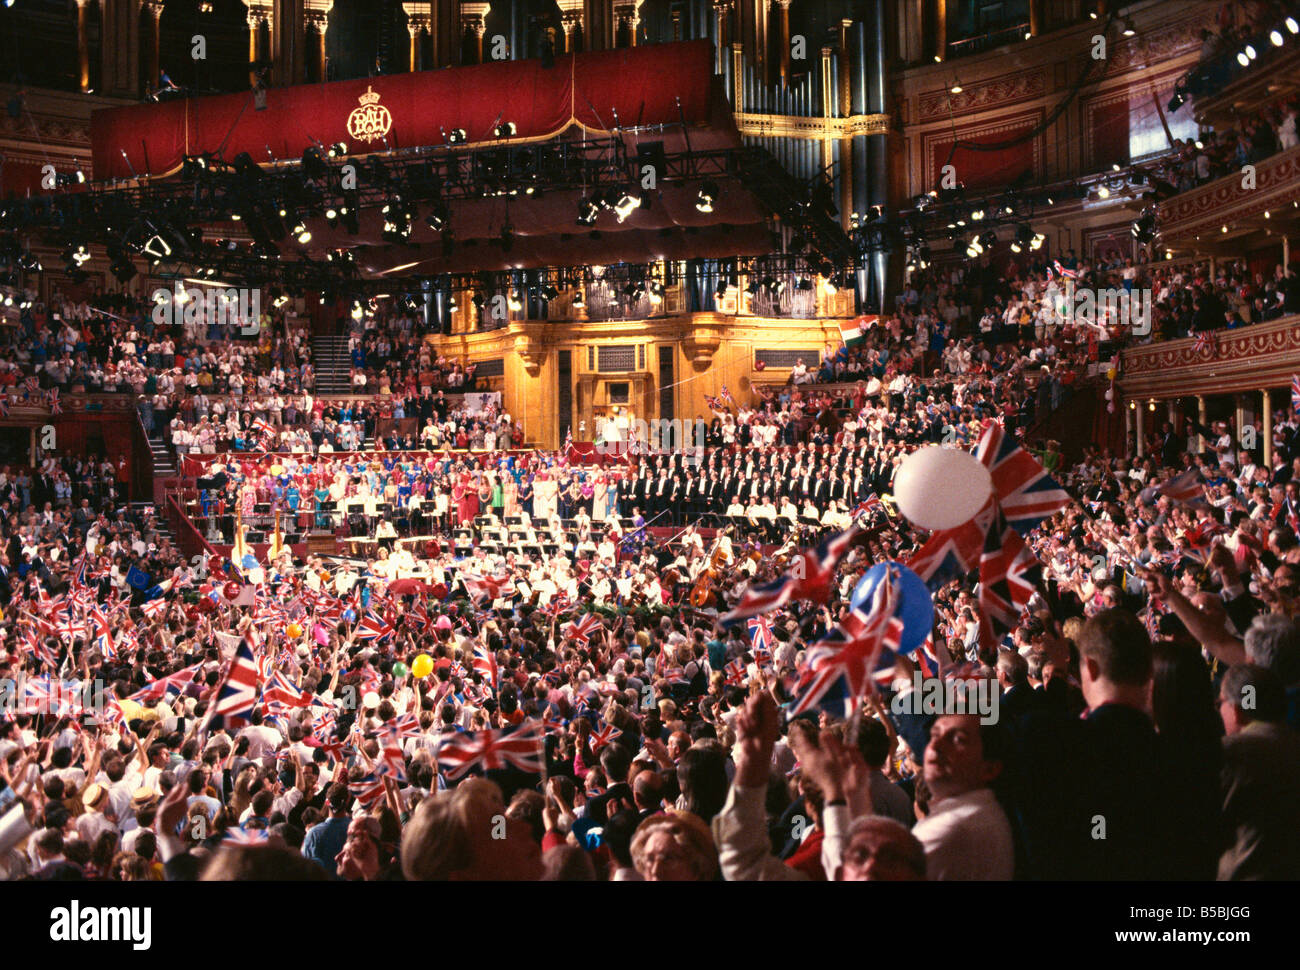 Audience at the Last Night of the Proms in 1992, Royal Albert Hall, Kensington, London, England, Europe - Stock Image